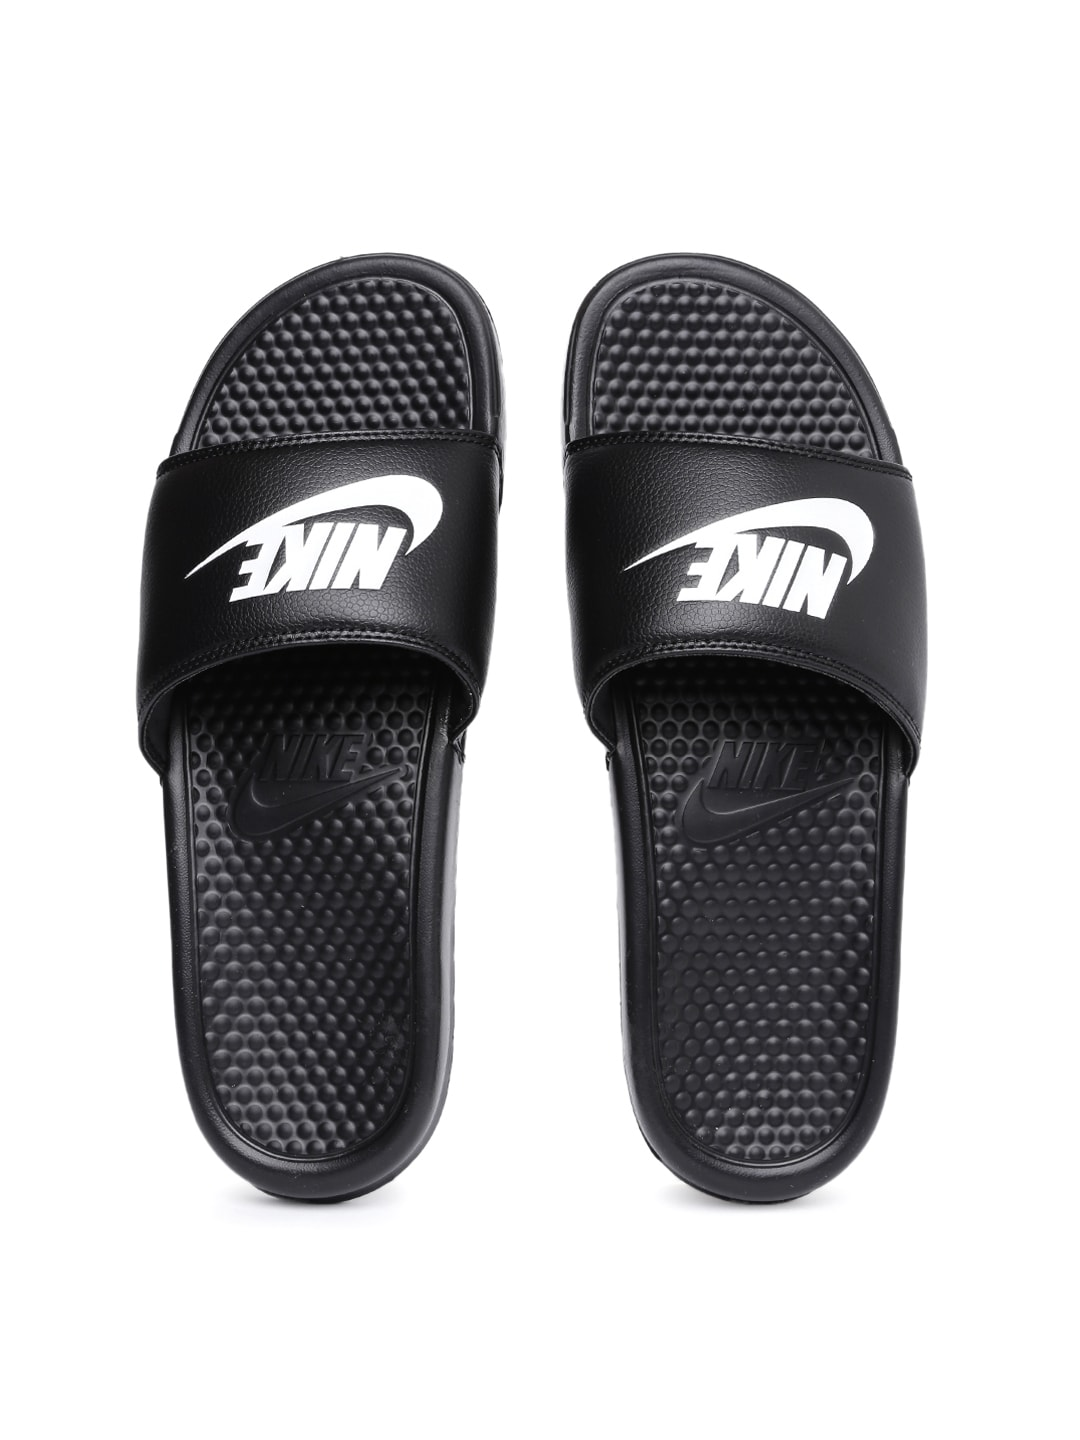 9d916f35d345 Nike Flip-Flops - Buy Nike Flip-Flops for Men Women Online